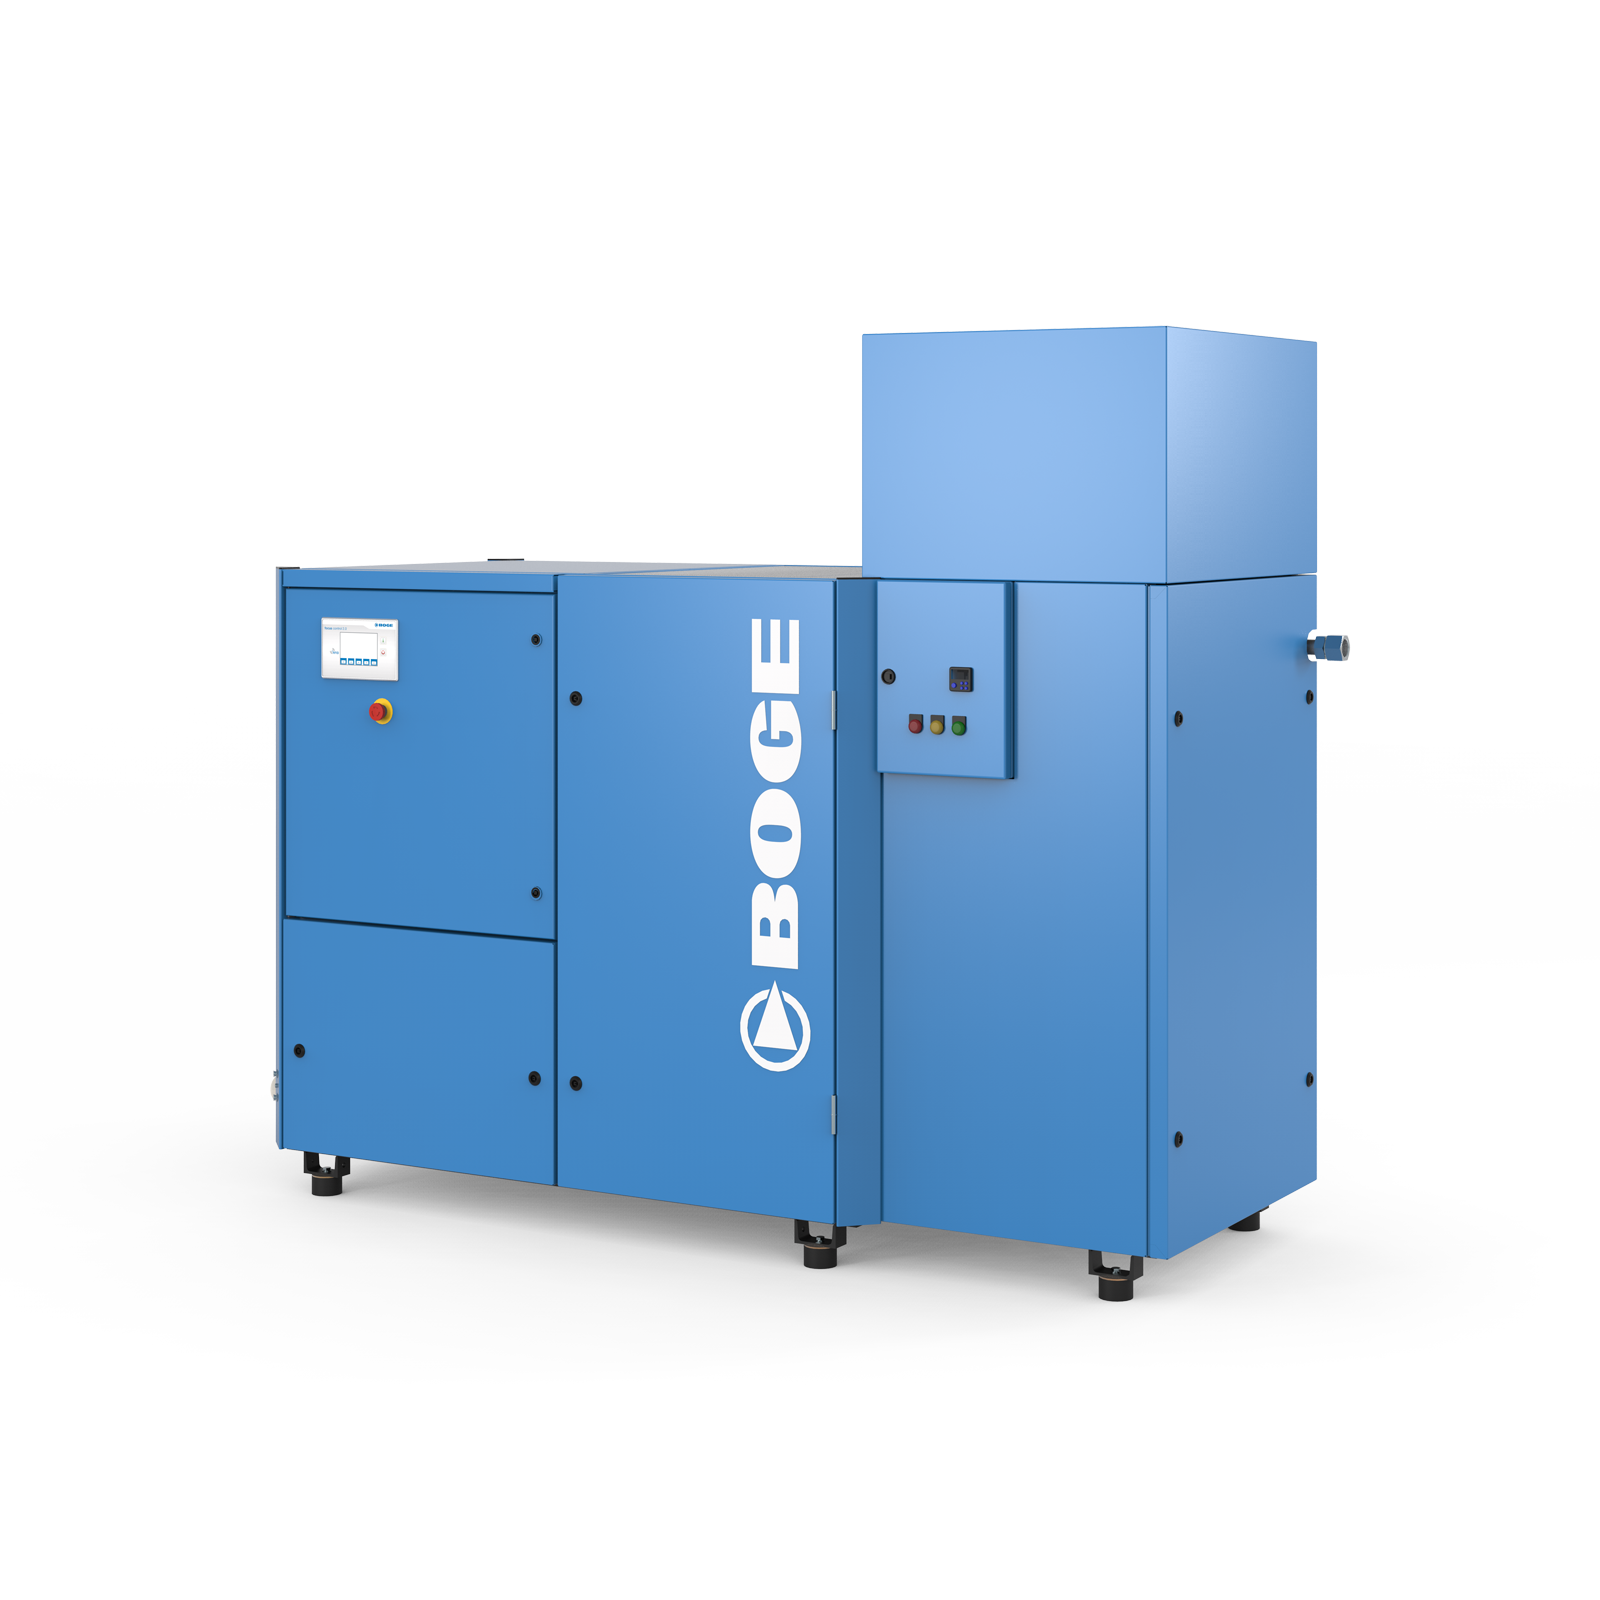 BOGE S-40-3 Bluekat Oil Free Screw Compressor